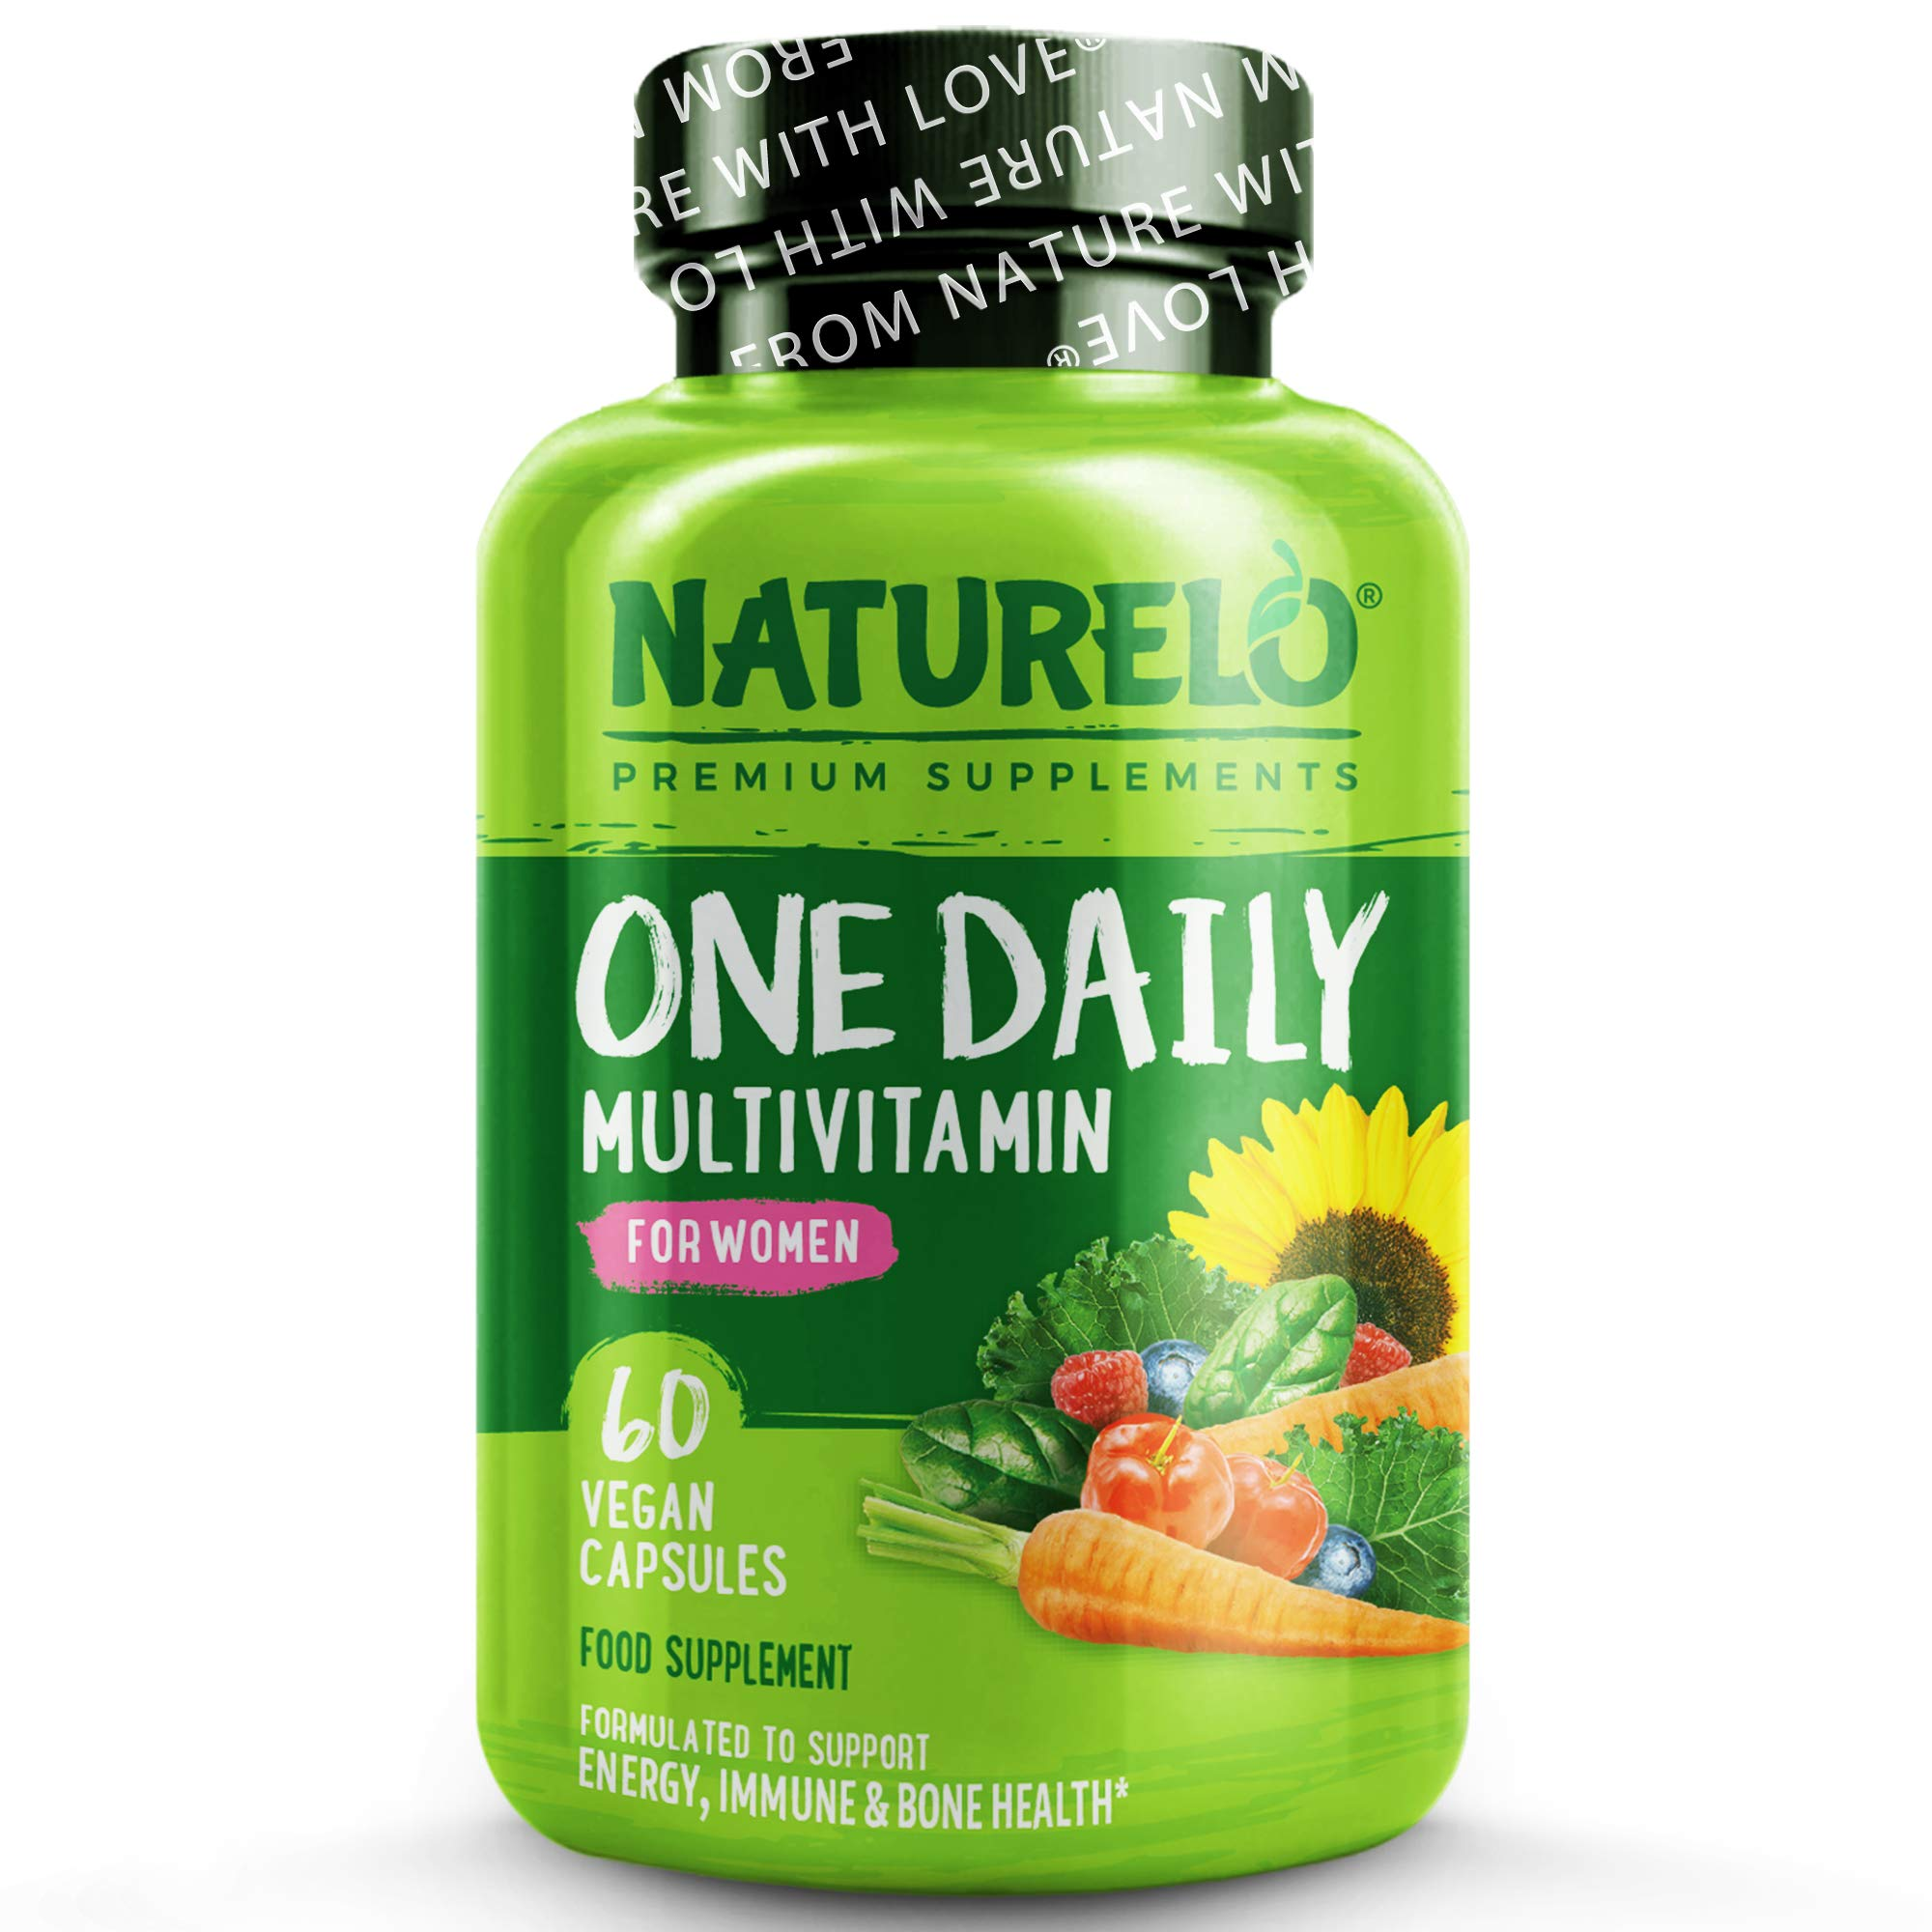 NATURELO One Daily Multivitamin for Women - with Natural Food-Based Vitamins, Fruit & Vegetable Extracts - Best for Maintaining Essential Nutrients - Non-GMO - 60 Vegan Capsules | 2 Month Supply